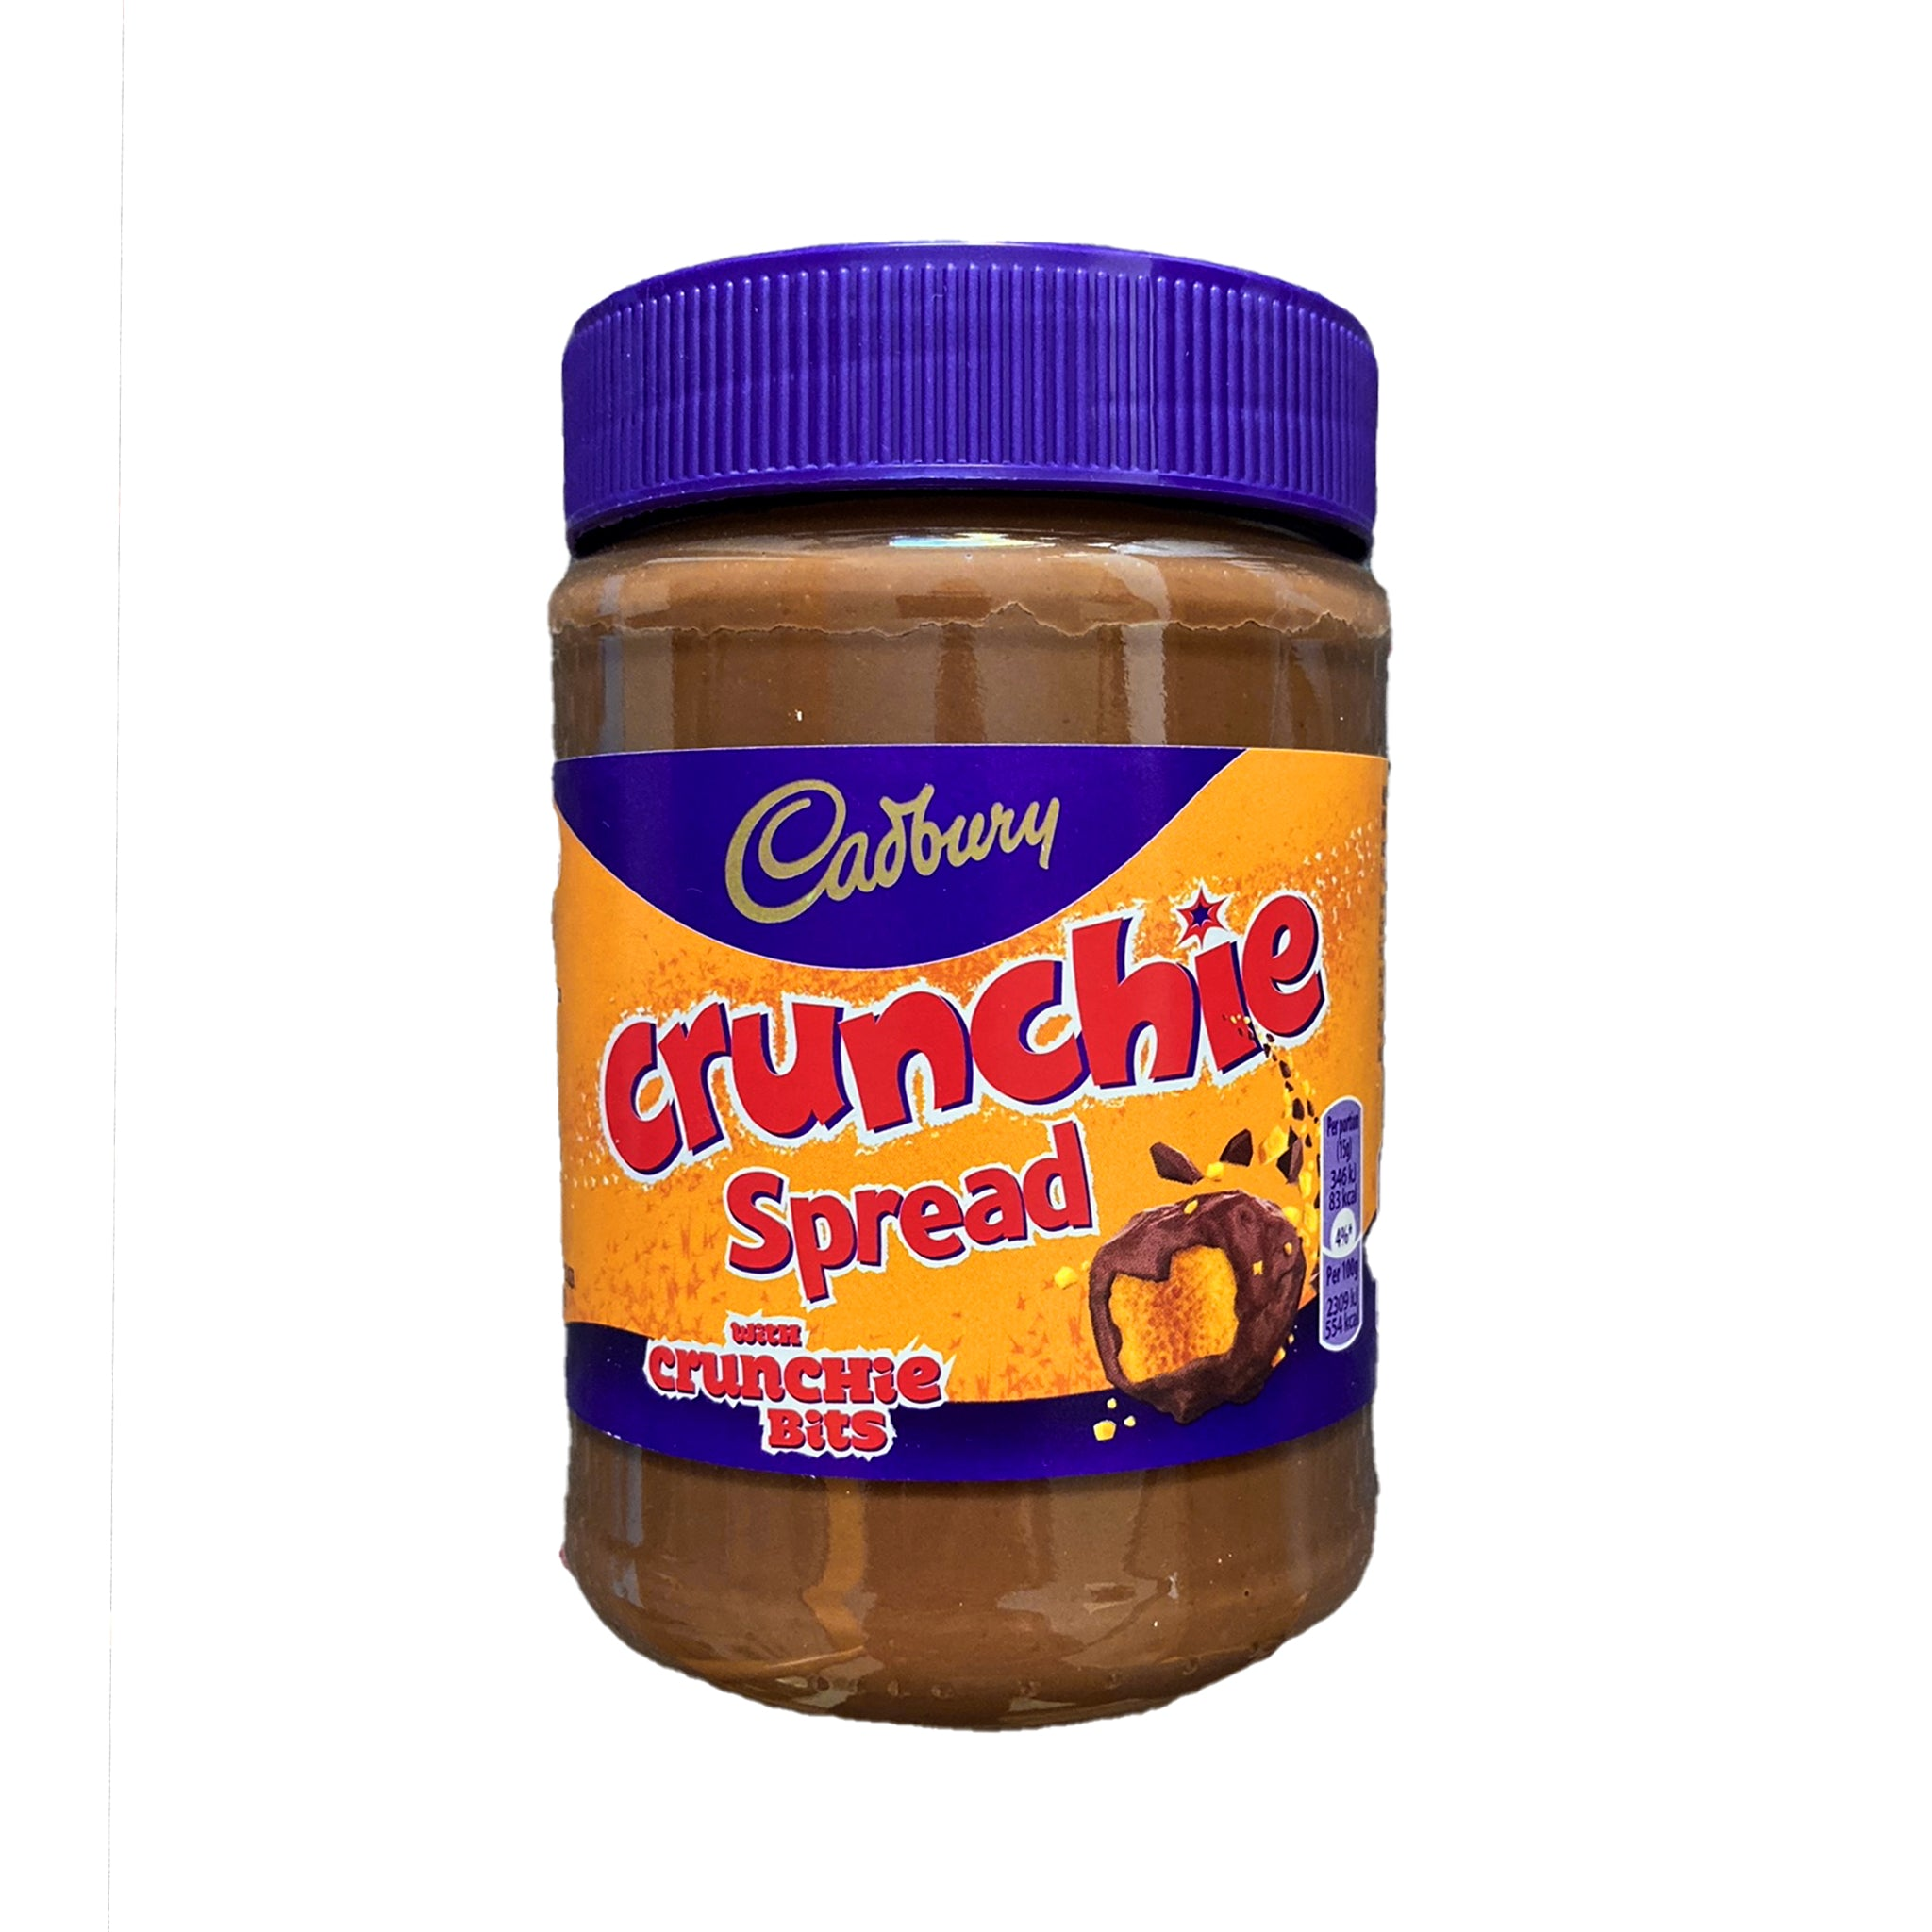 Cadbury Crunchie Spread ממרח קראנצ'י קדבורי